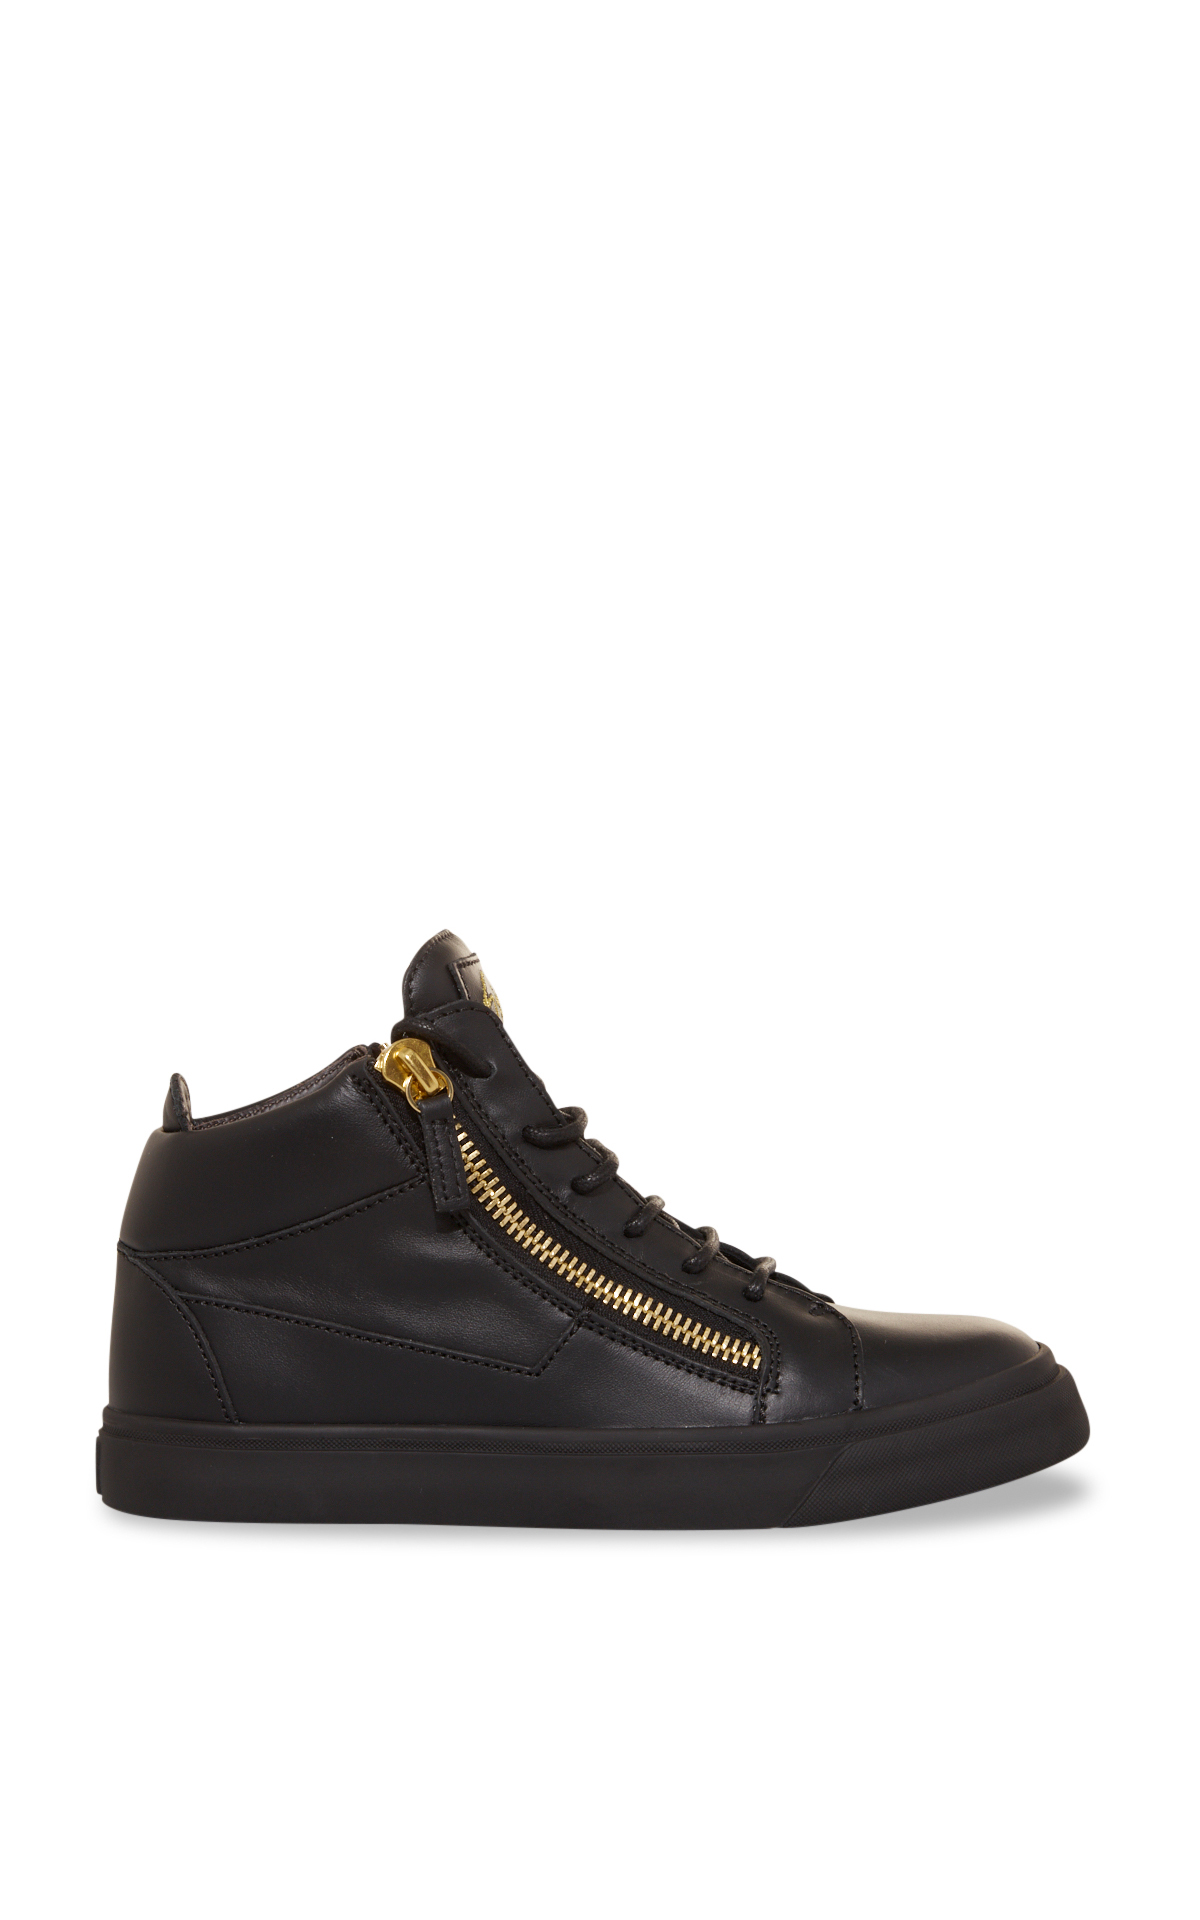 Guiseppe Zanotti Black high-top sneakers La Vallée Village